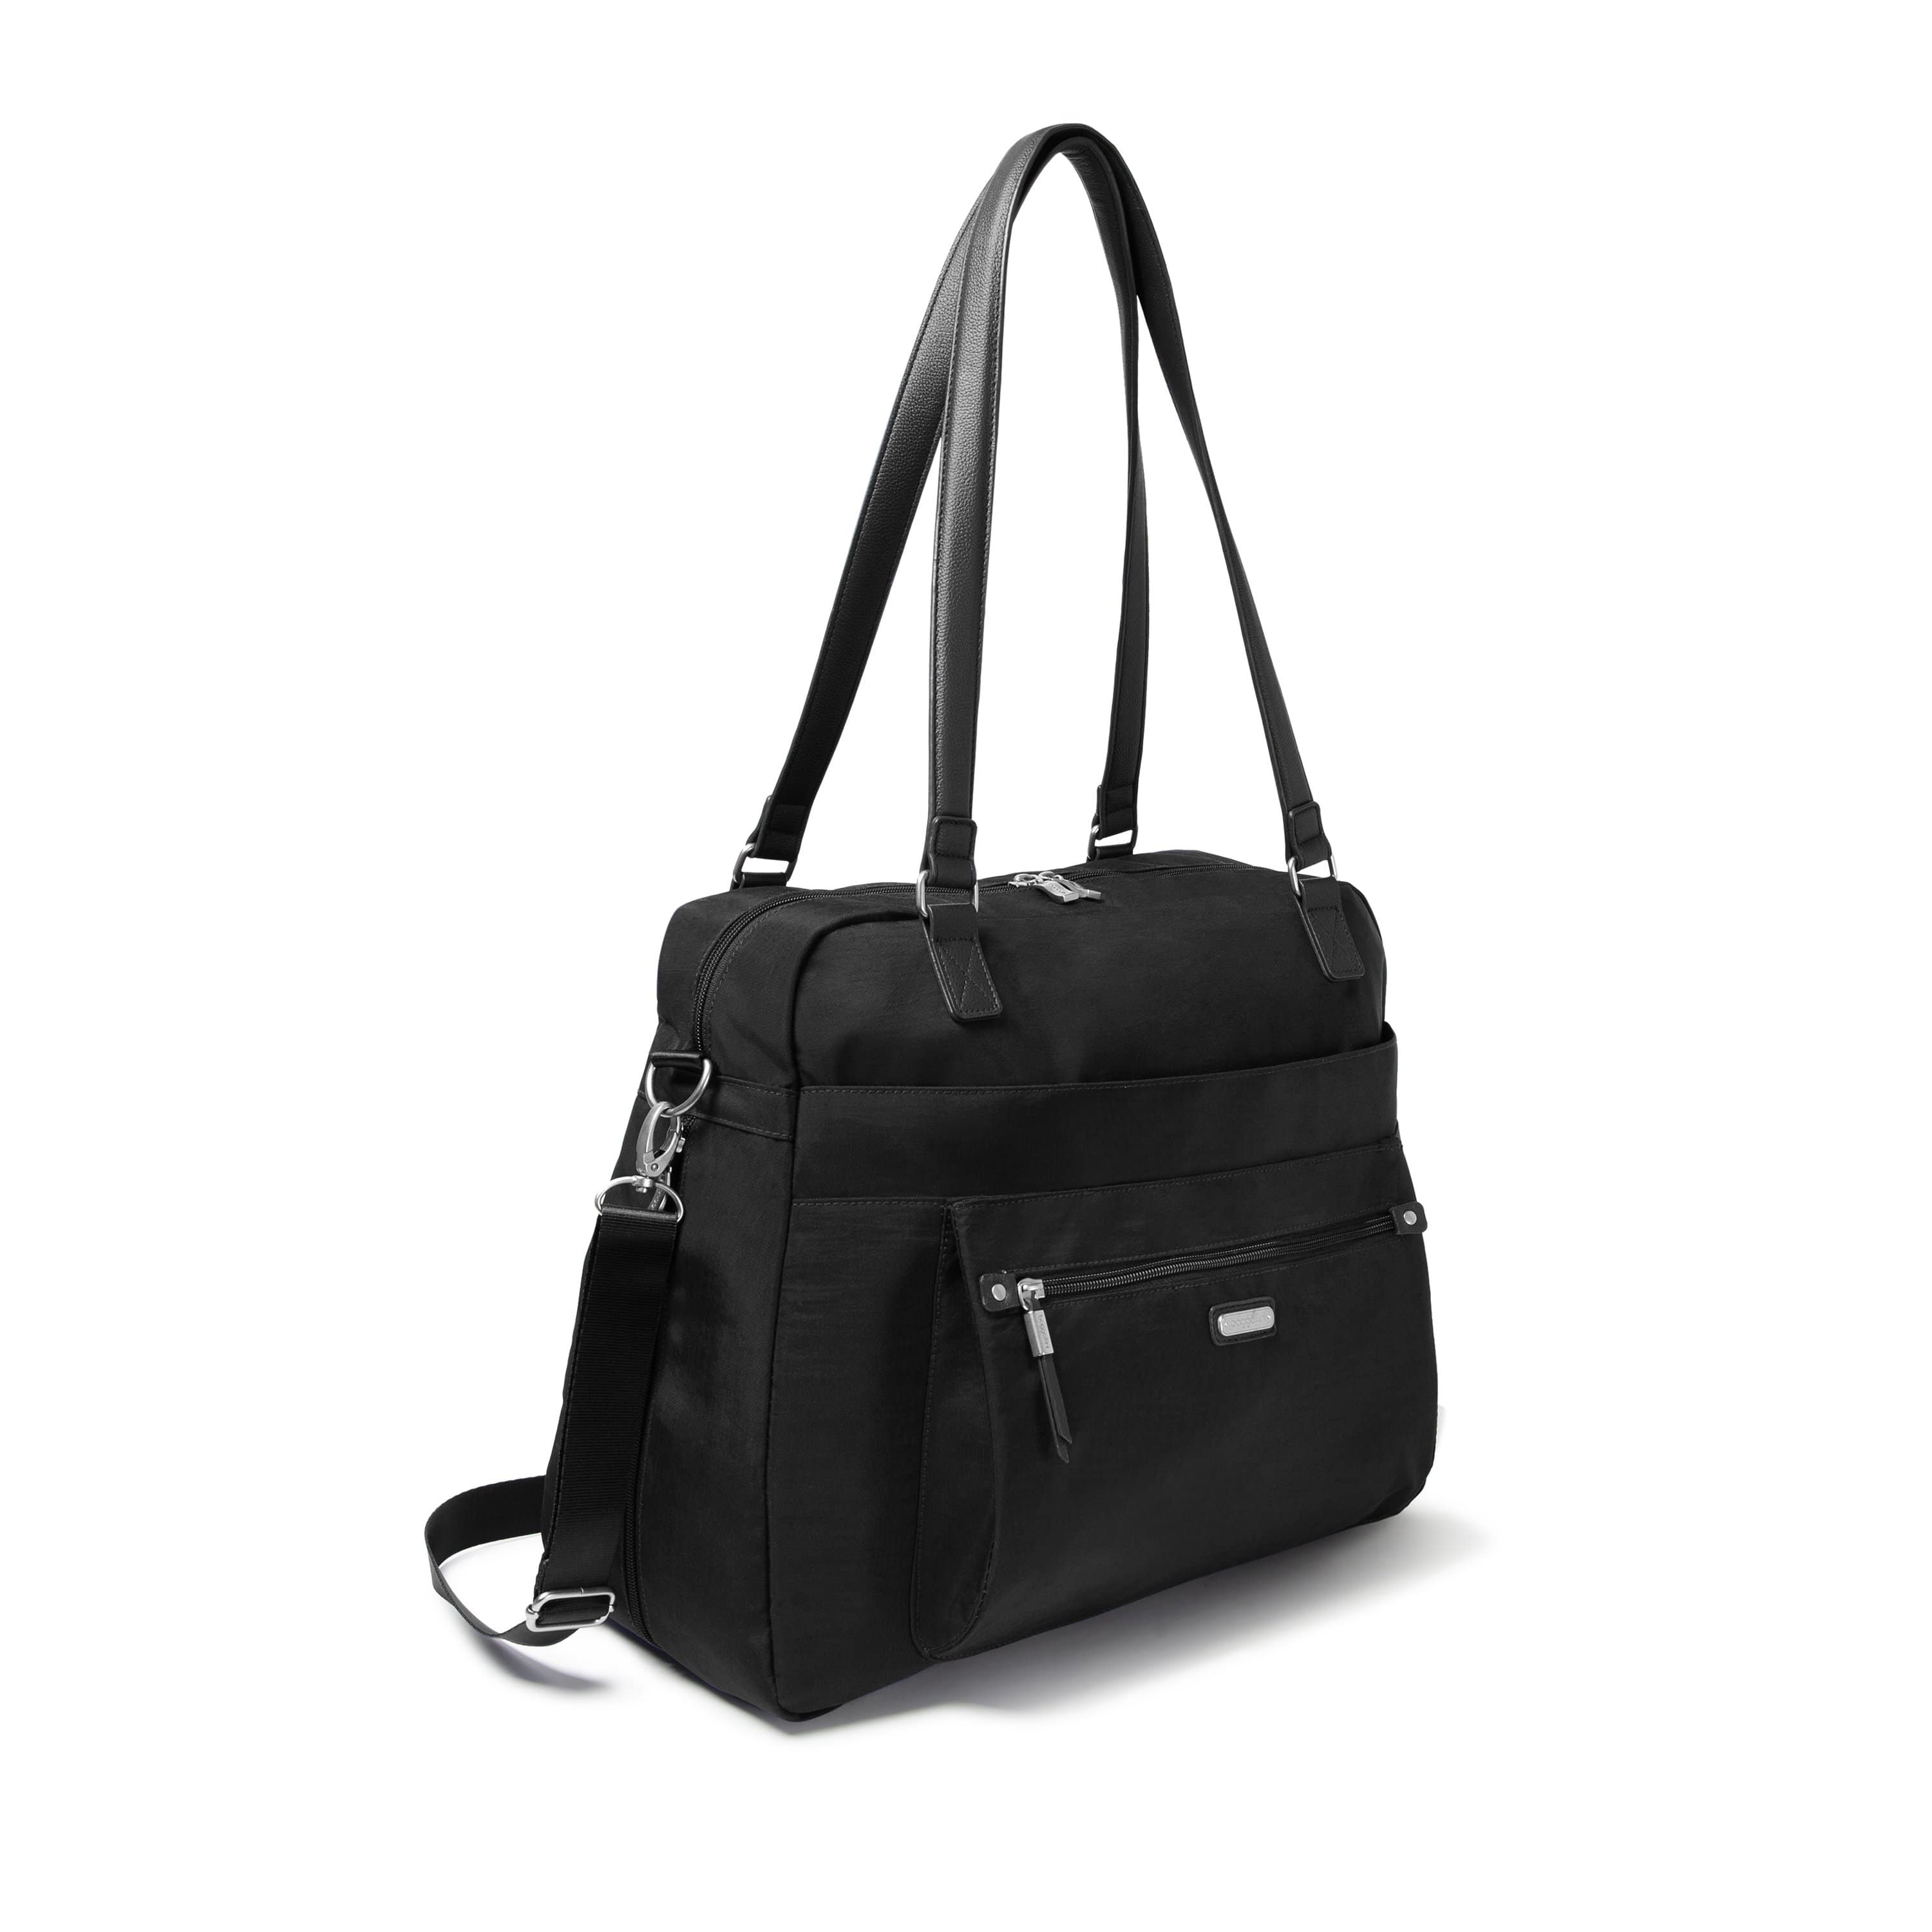 Baggallini OET337 Water Resistant Nylon Expandable Laptop Tote Bag